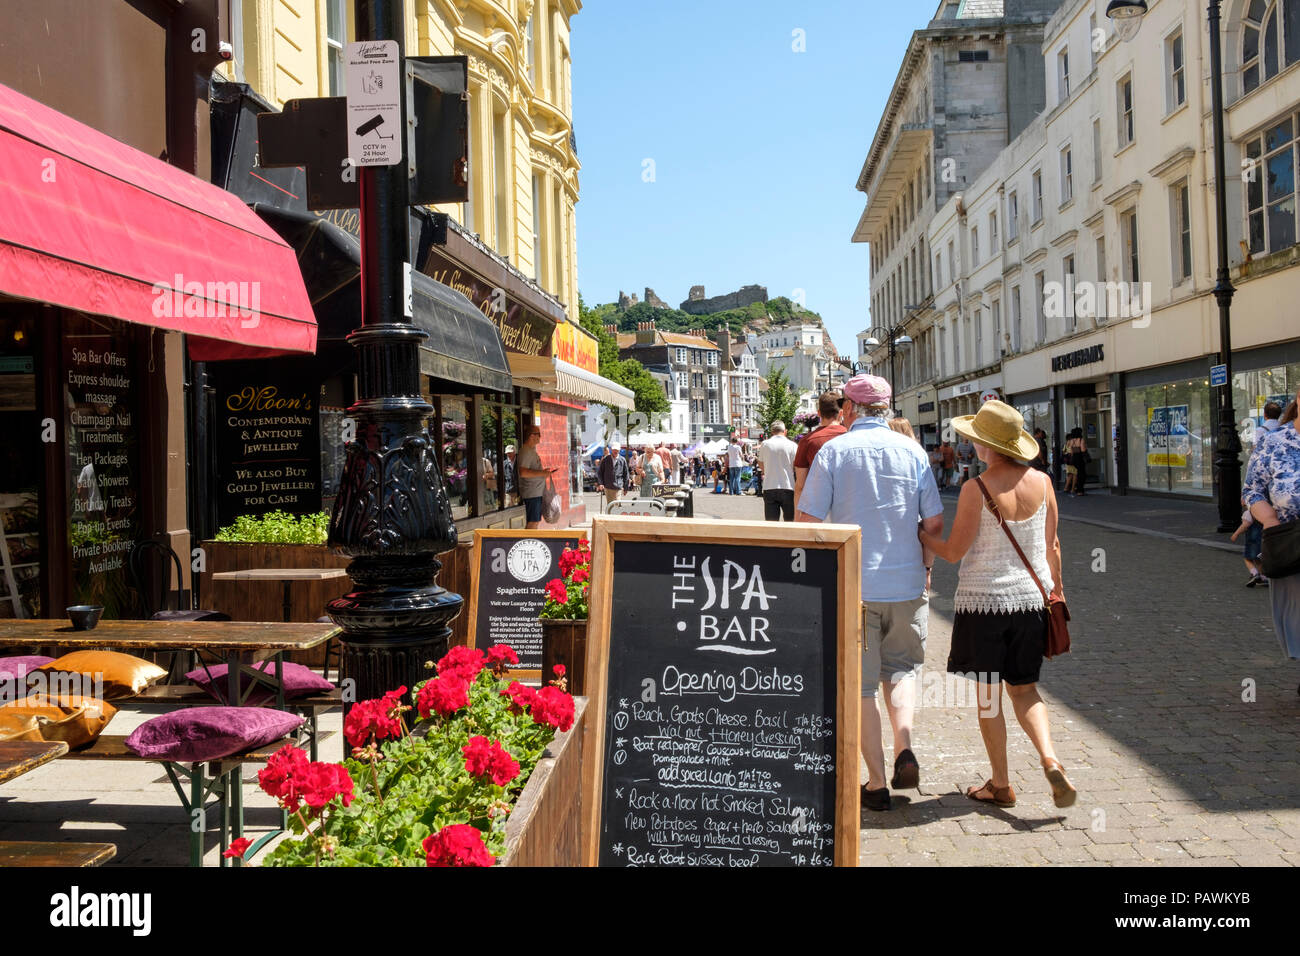 Cafes in Robertson Street, Hastings, looking towards the Castle, East Sussex, UK - Stock Image